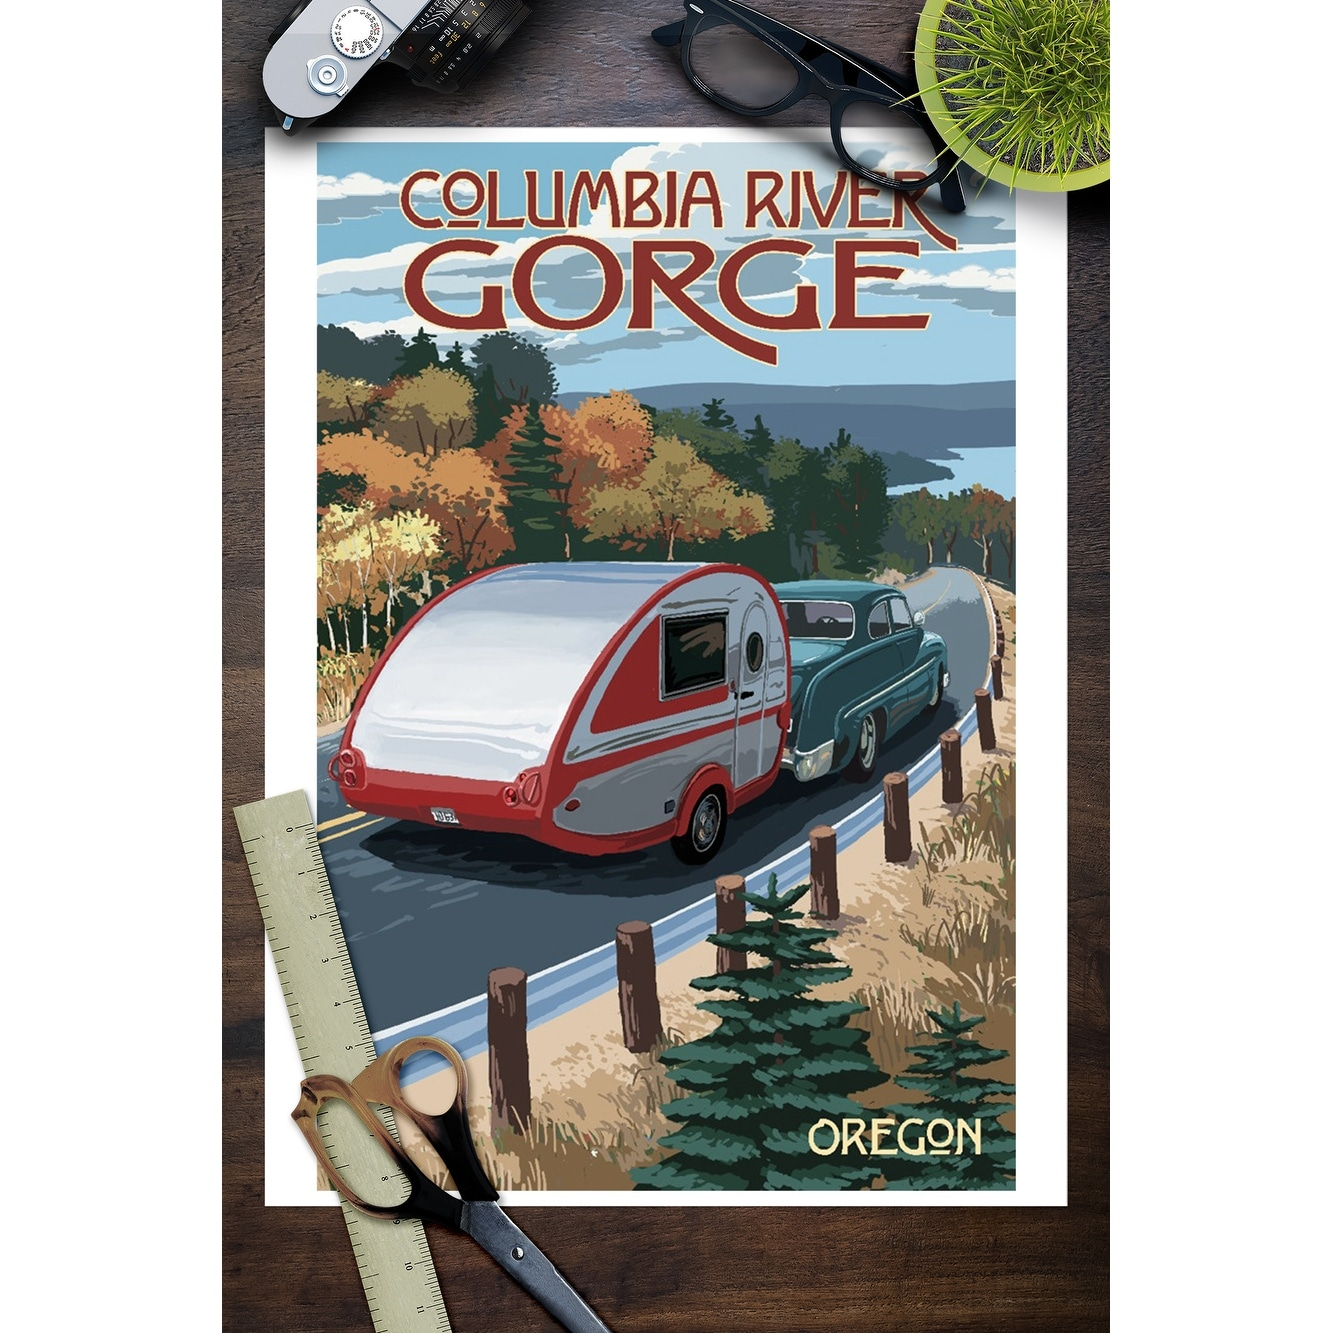 Columbia River Gorge - Retro Camper on Road - Lantern Press Artwork (Art  Print - Multiple Sizes Available) - 9 x 12 Art Print